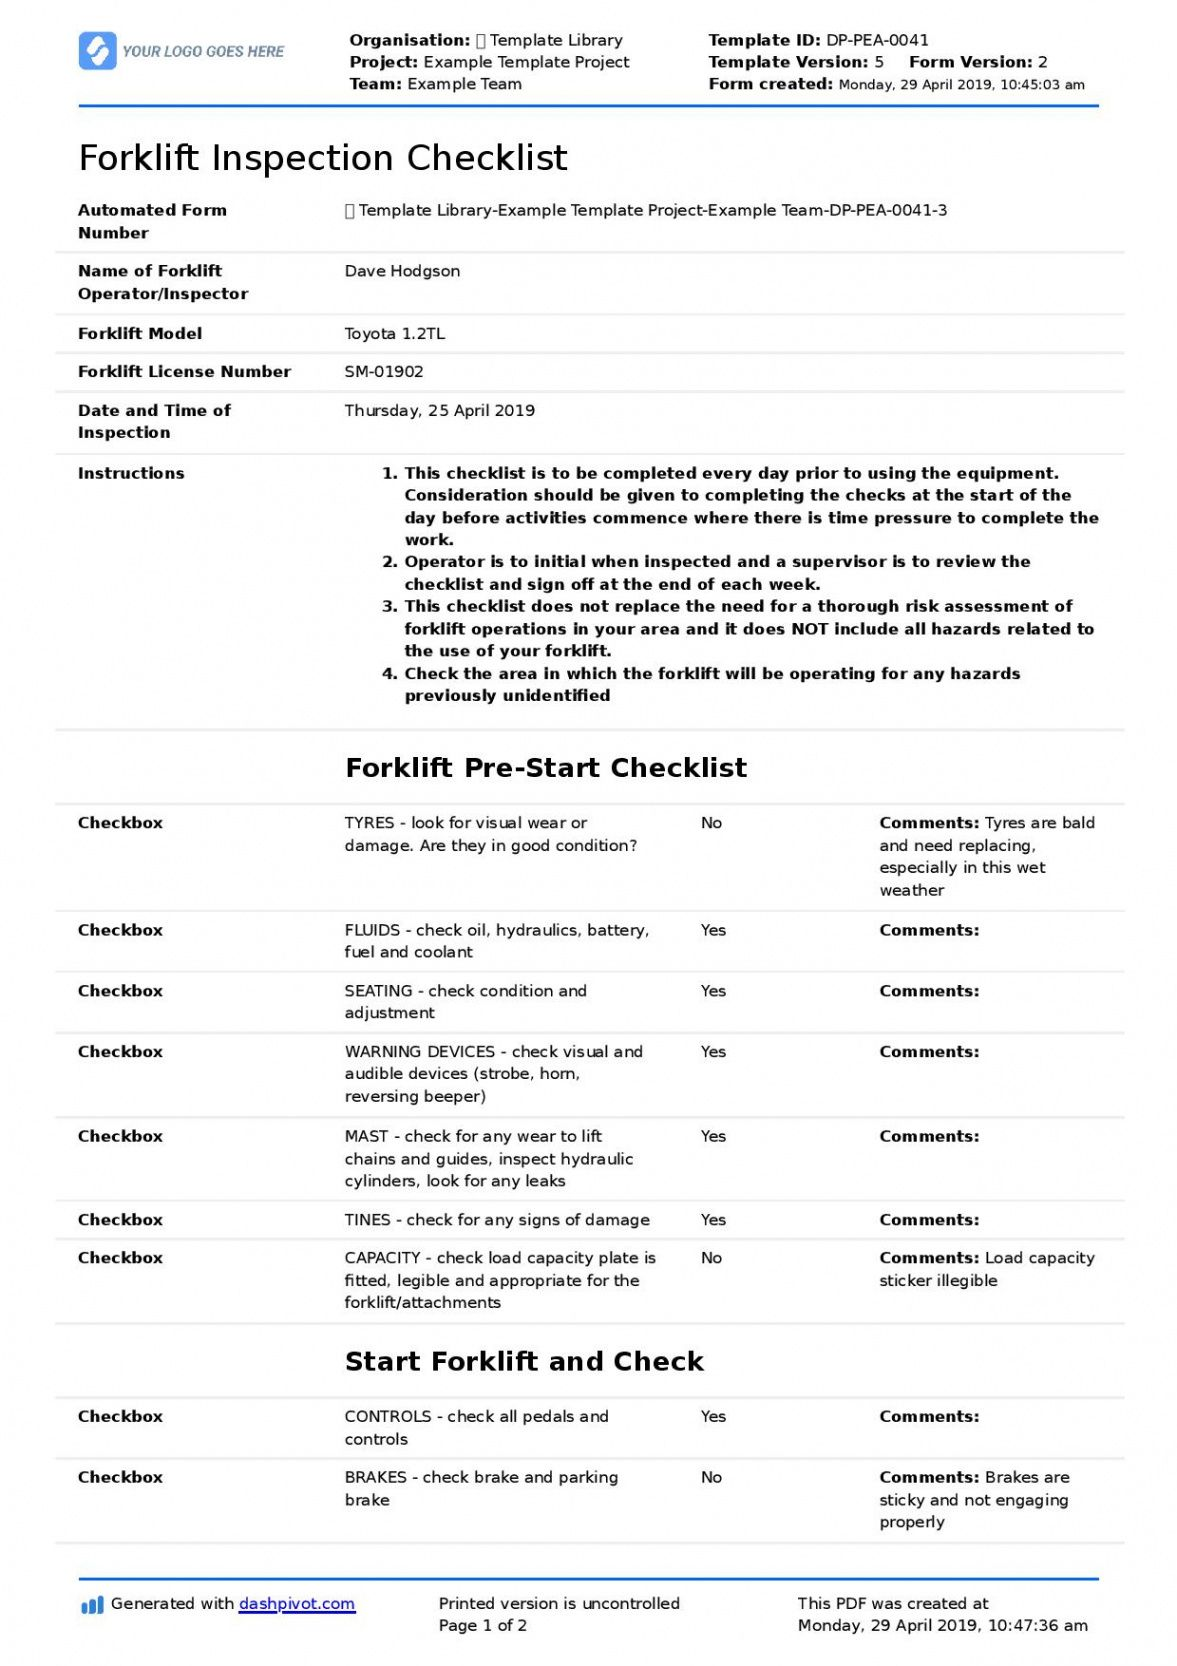 sample forklift inspection checklist for daily preuse & safety forklift safety checklist template doc